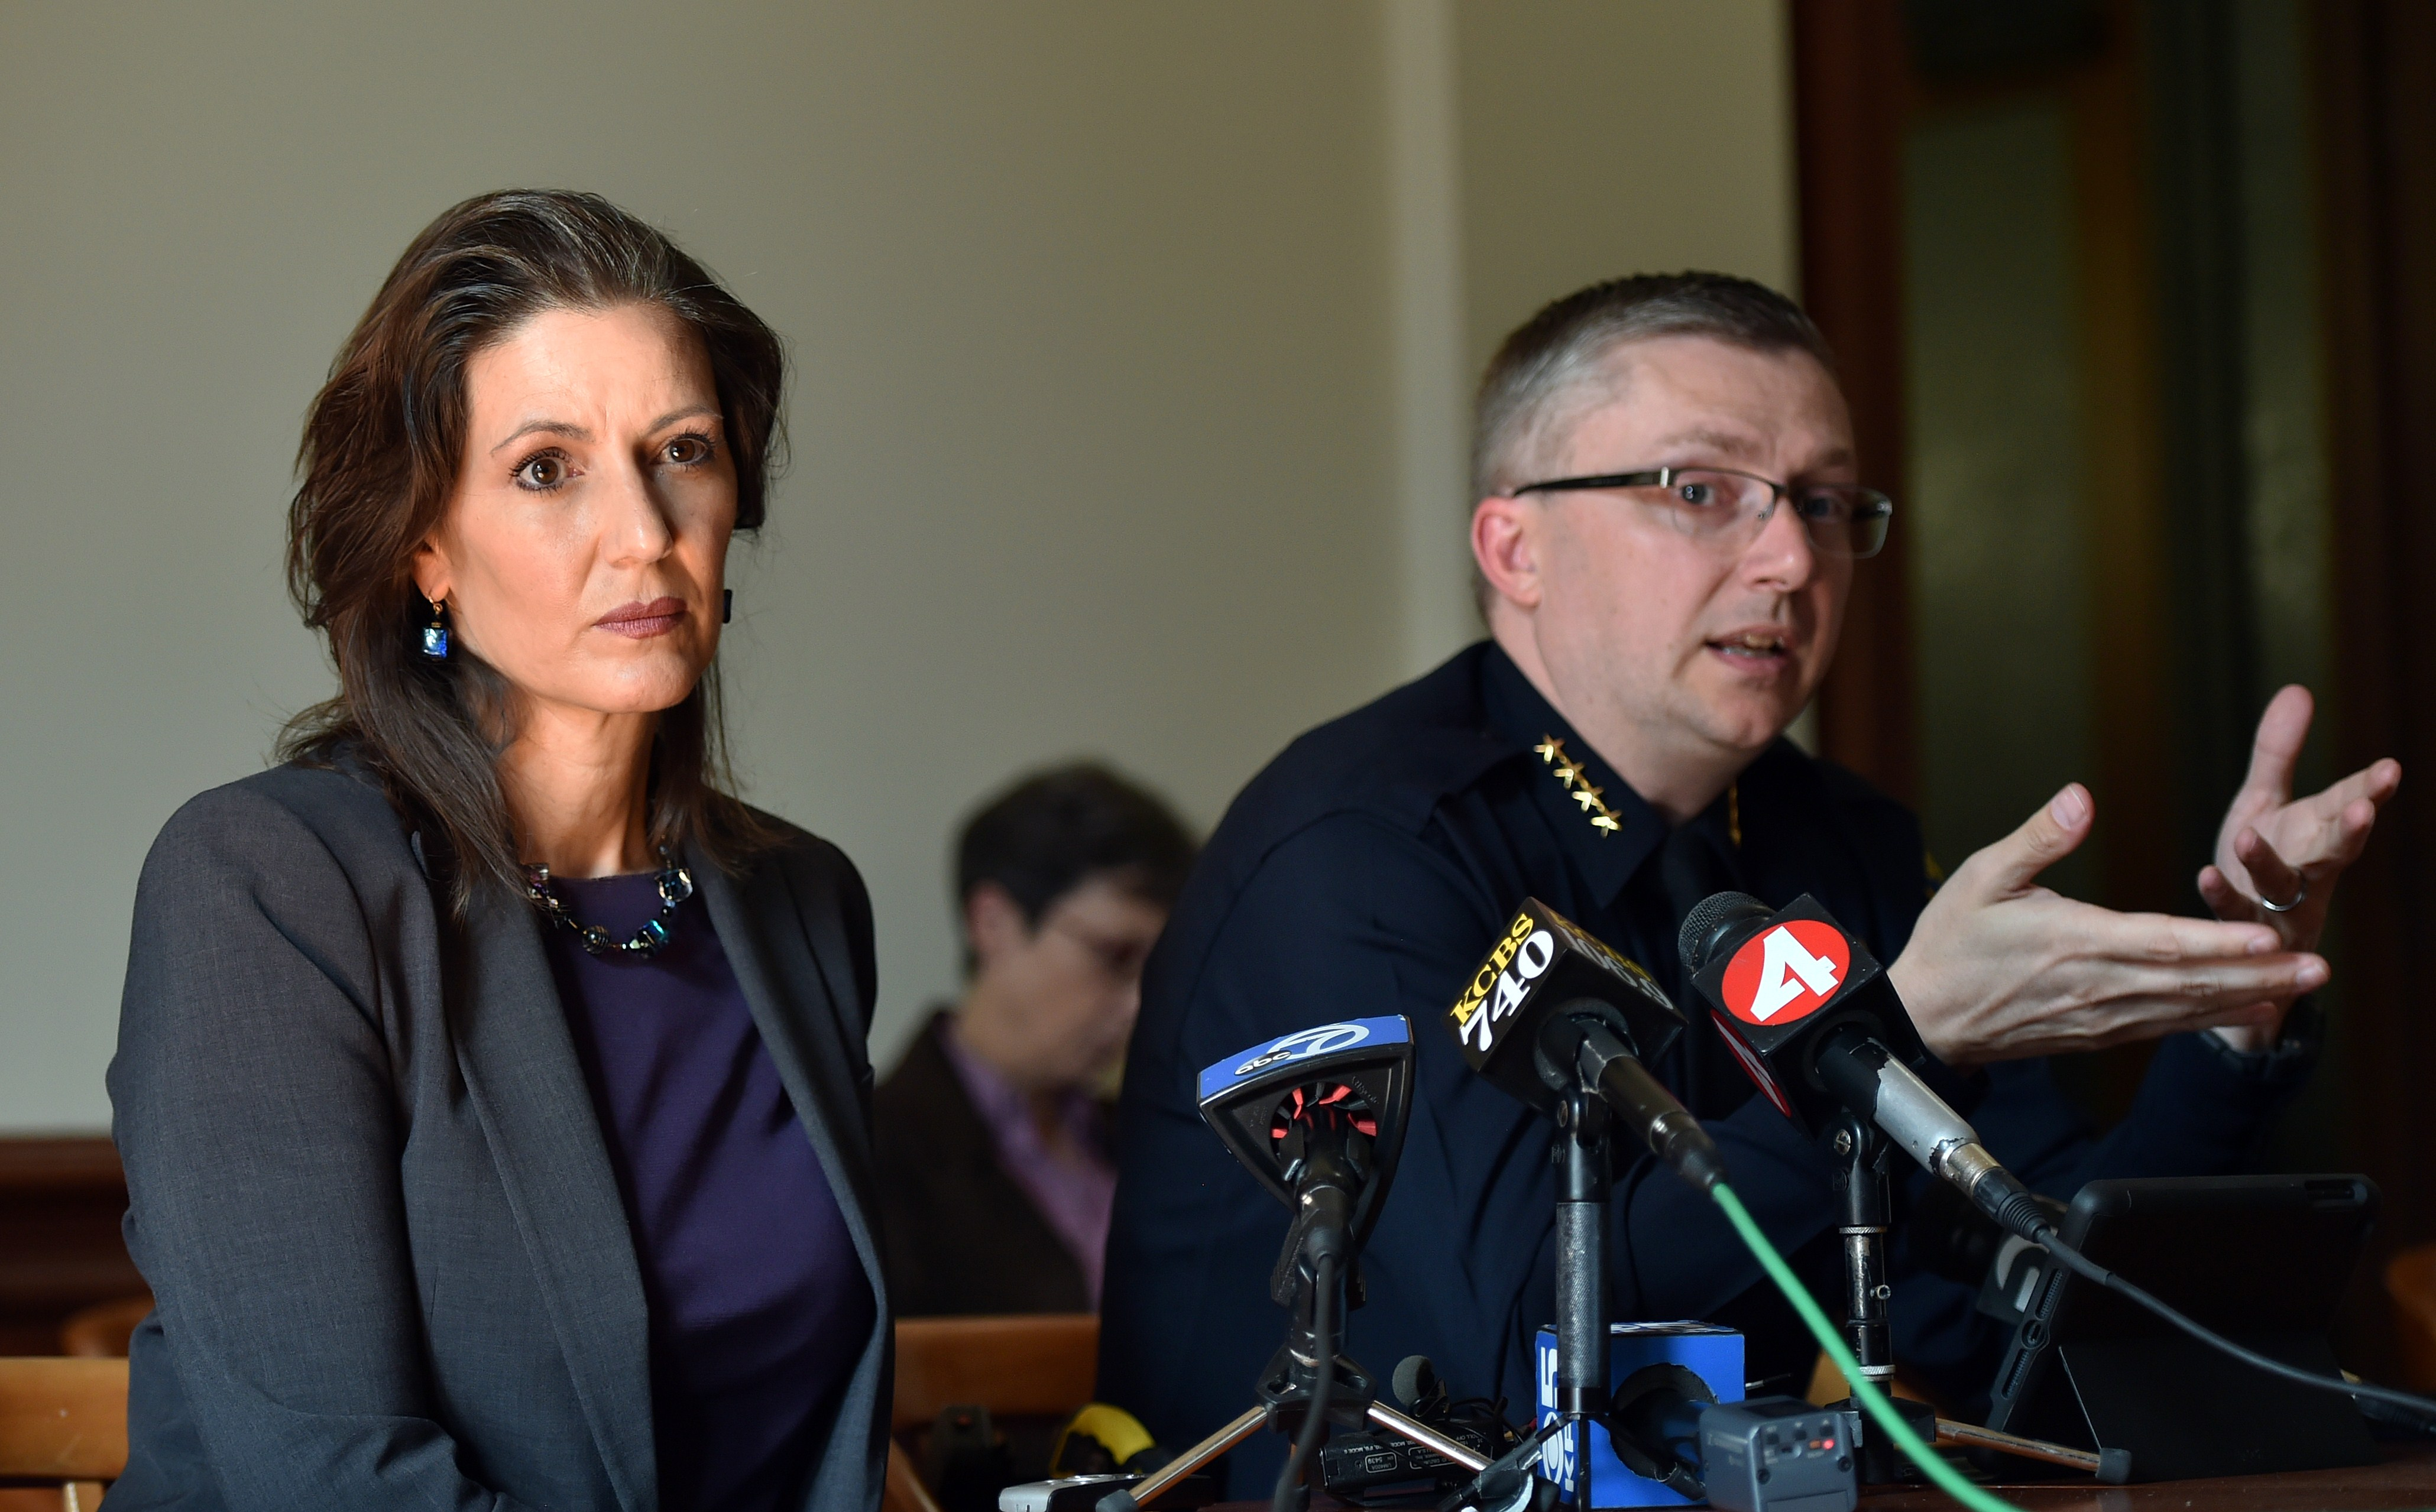 Oakland Mayor Libby Schaaf (L) and Oakland Police Chief Sean Whent (R) speak to members of the media about vandalism and property damage that ensued during a May Day protest in Oakland, California on May 2, 2015.